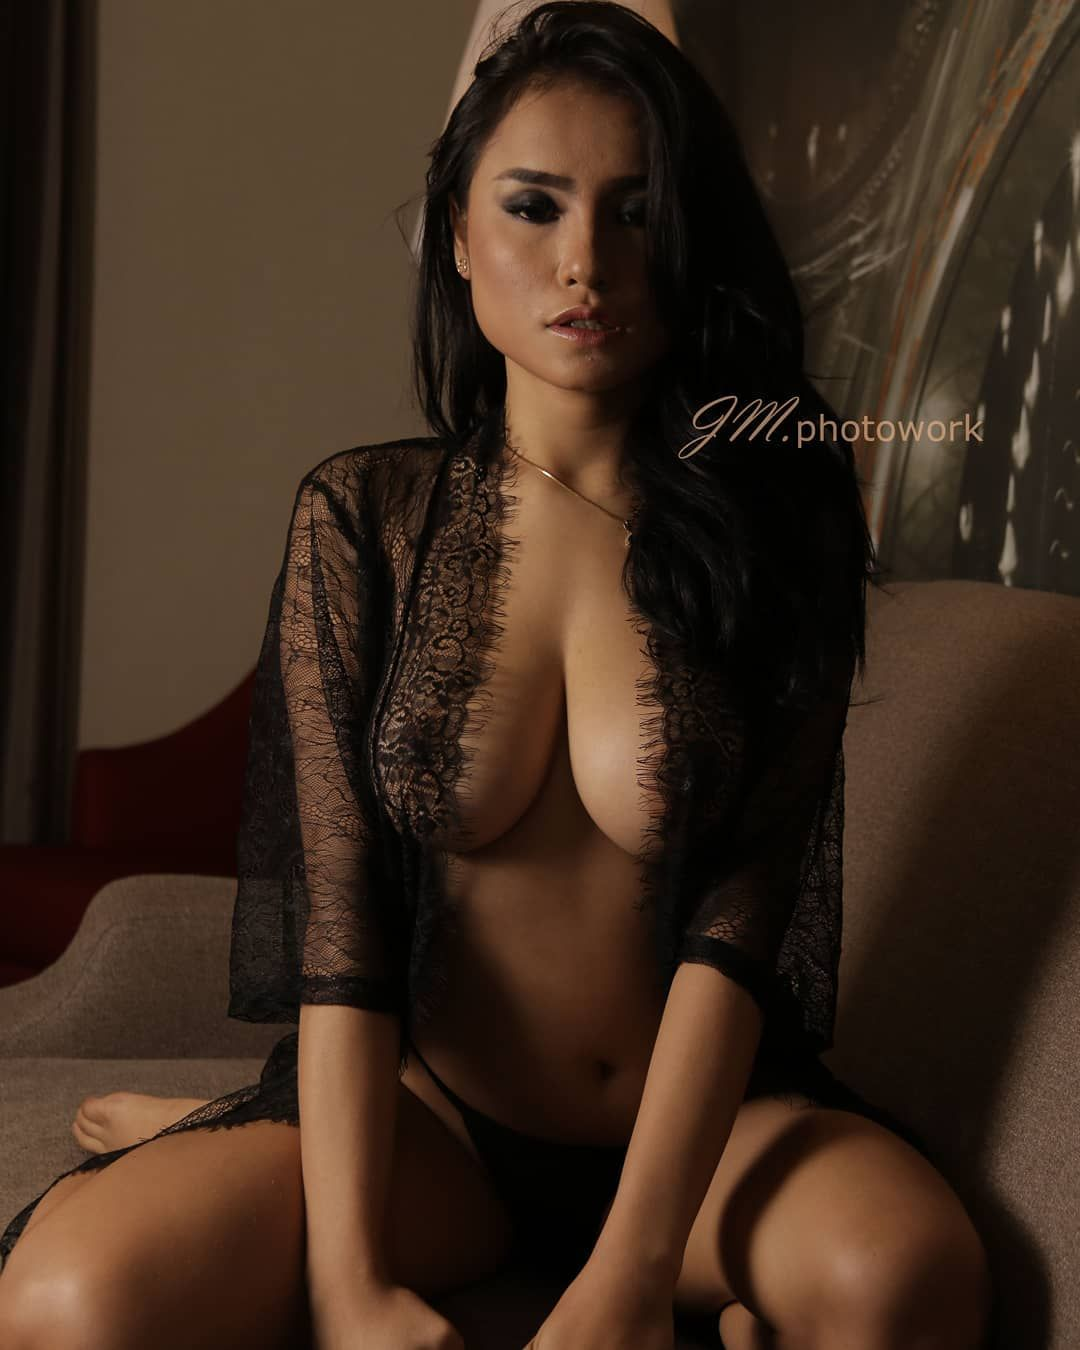 Amelia Intan Nude 26 best hot images | model, amelia, hot